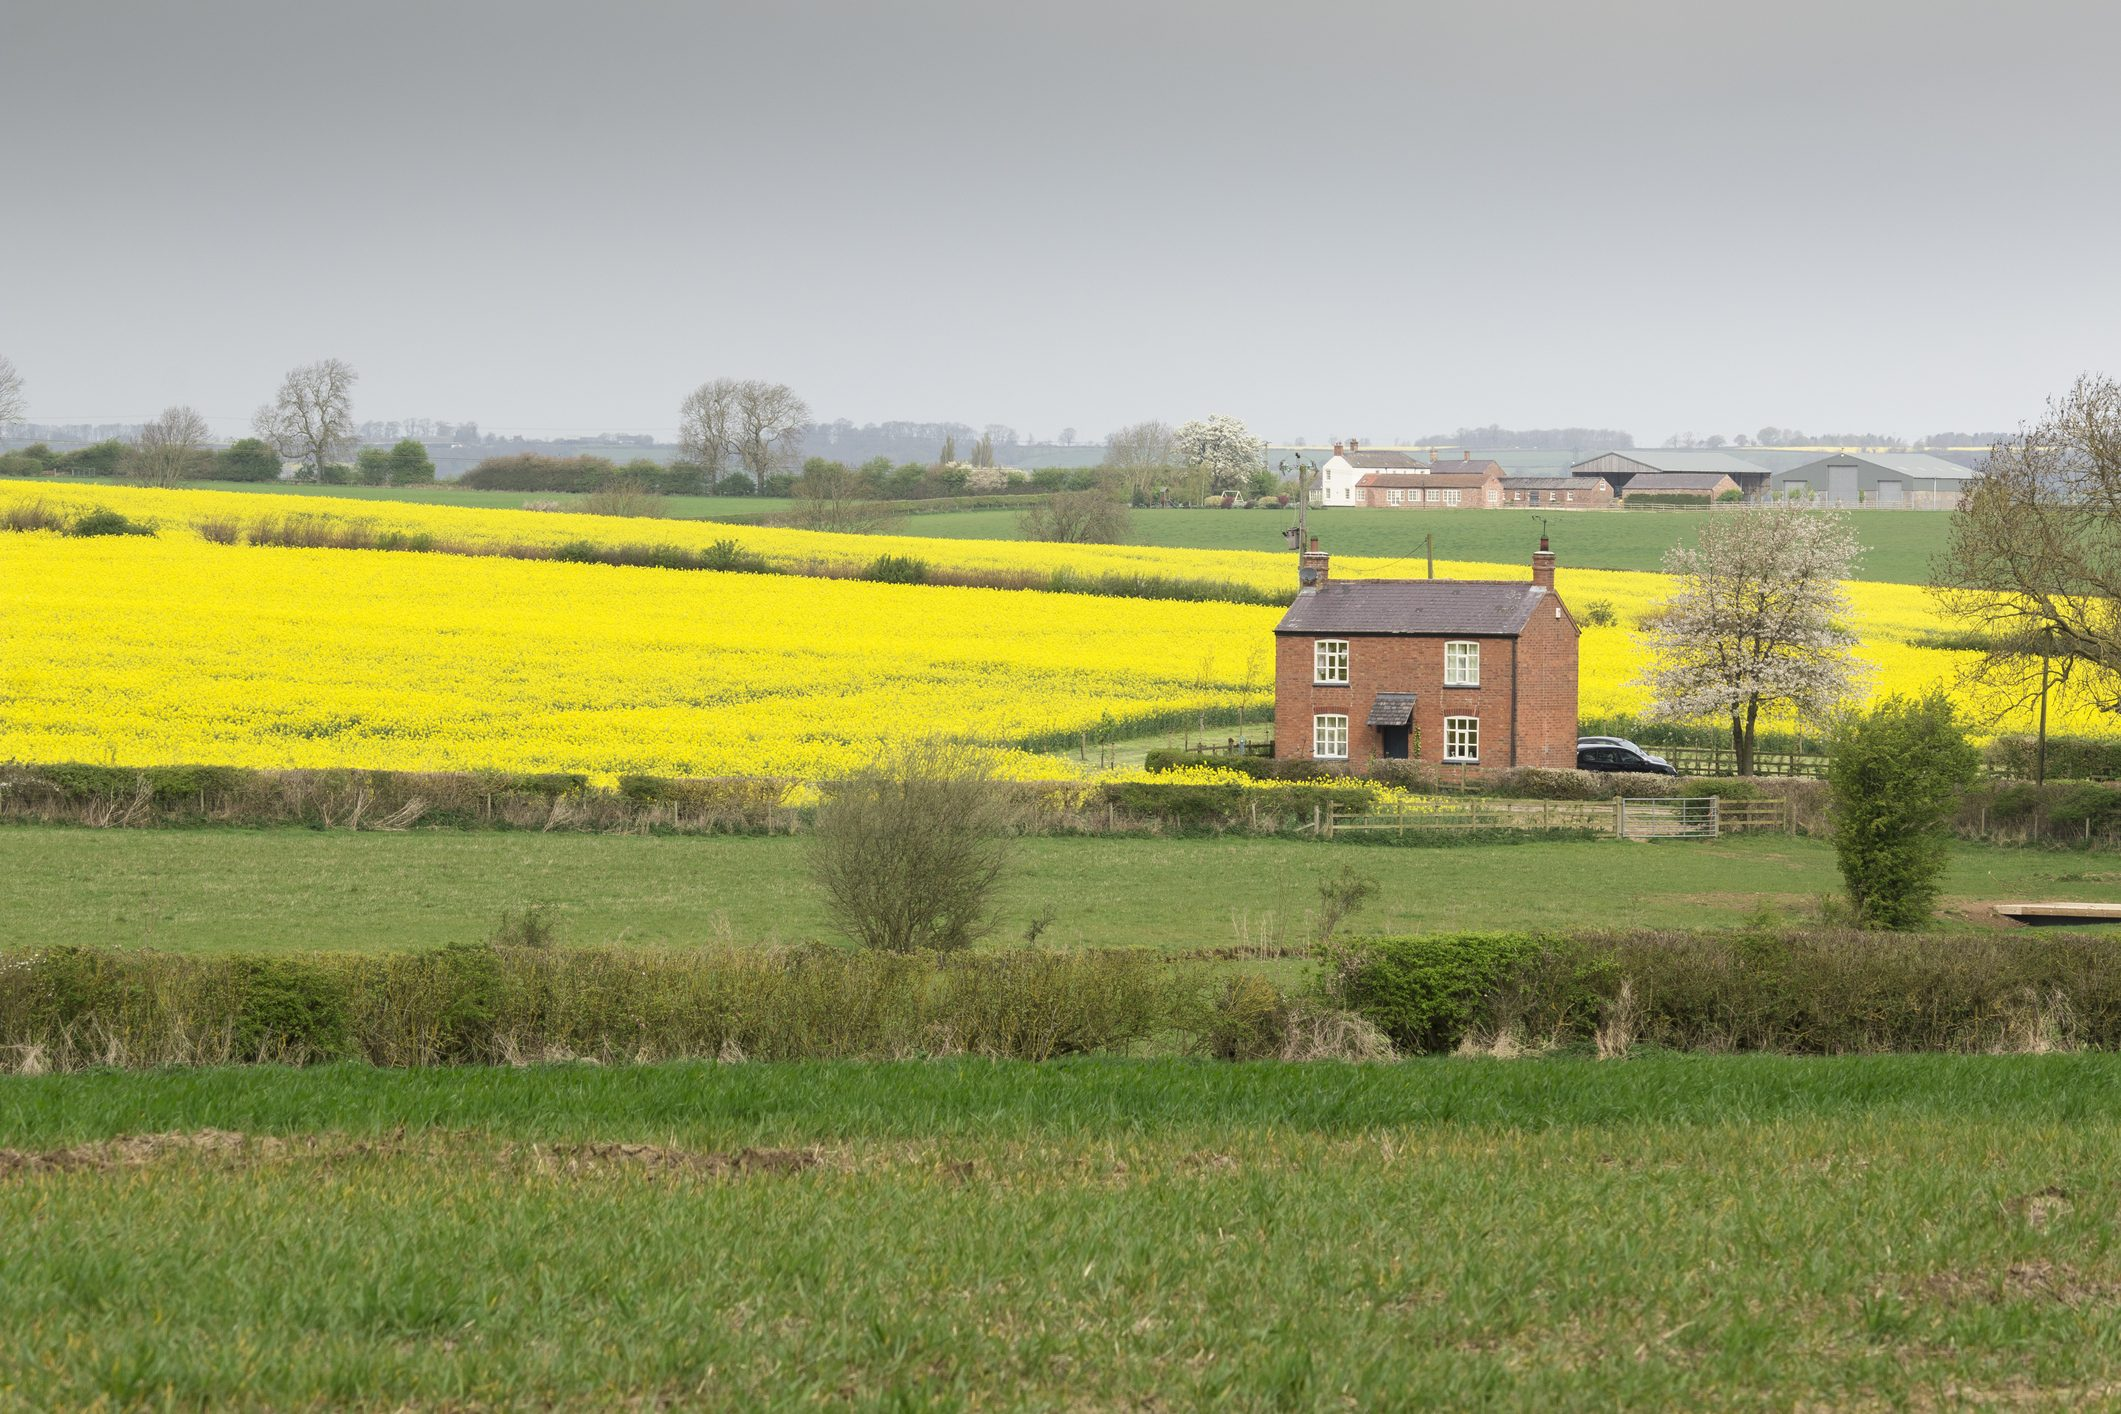 Holiday cottage in idyllic countryside setting